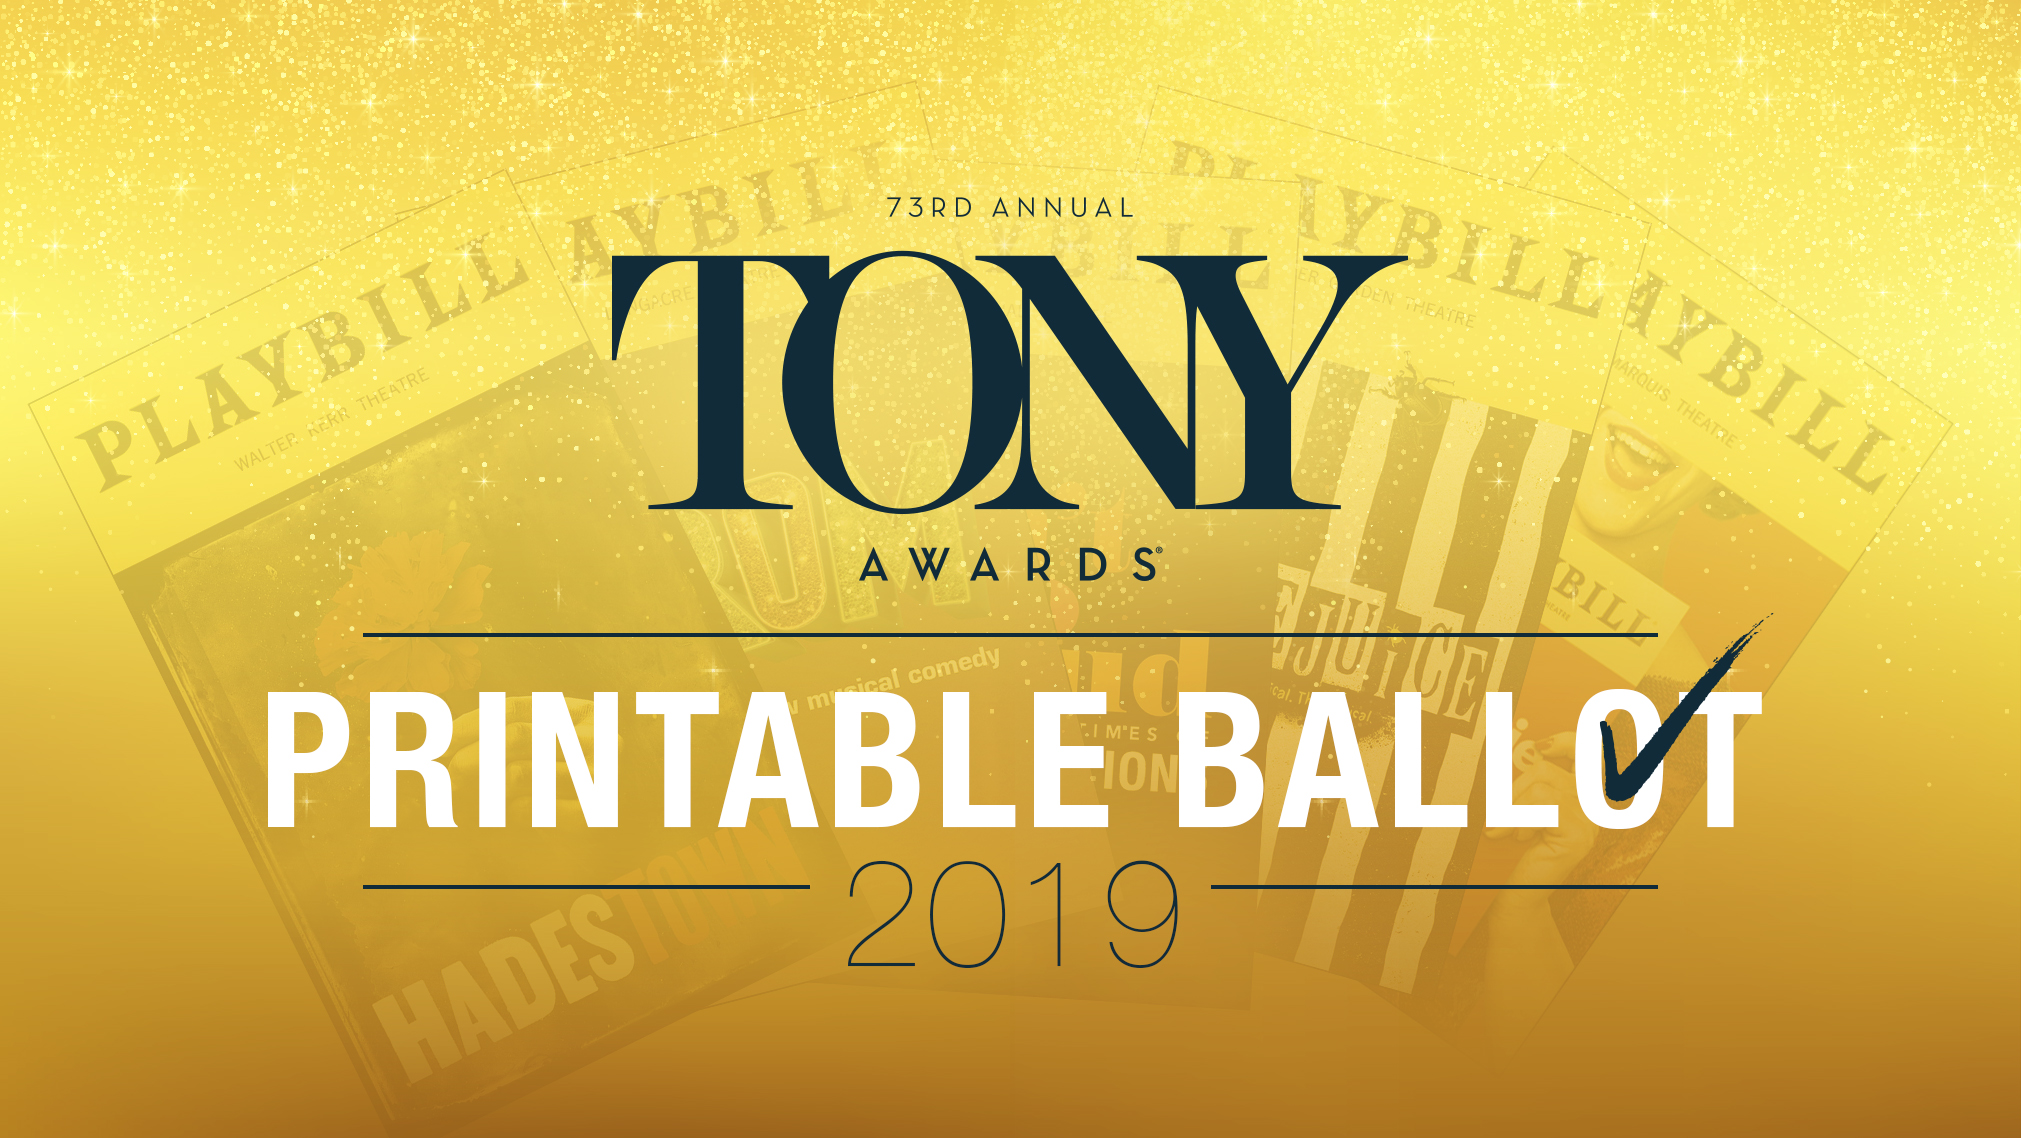 Print Your Official Playbill Ballot for the 2019 Tony Awards